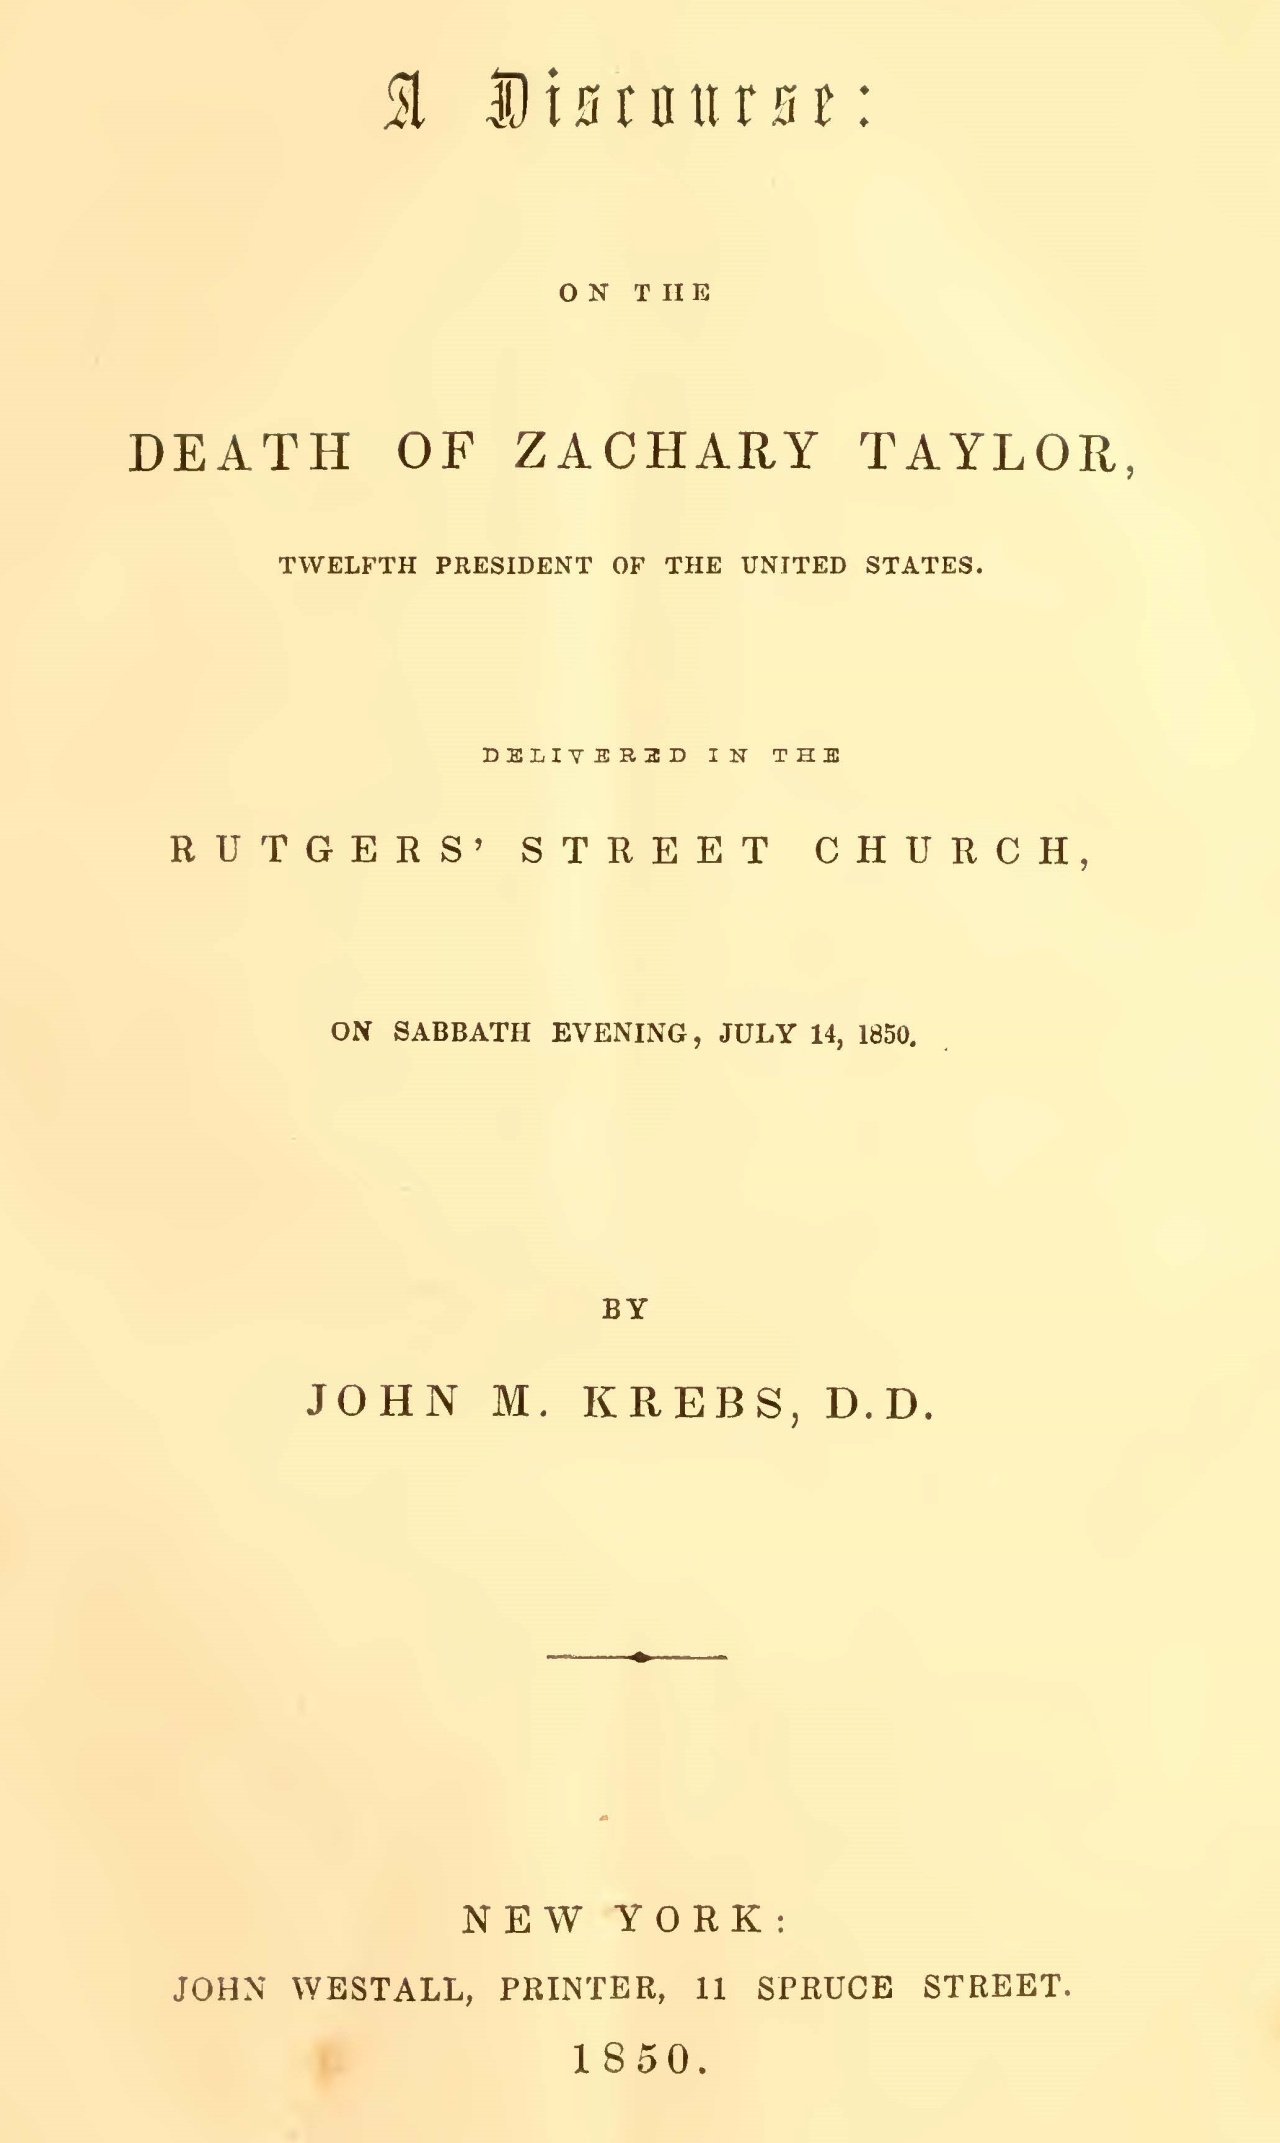 Krebs, John Michael, A Discourse on the Death of Zachary Taylor Title Page.jpg